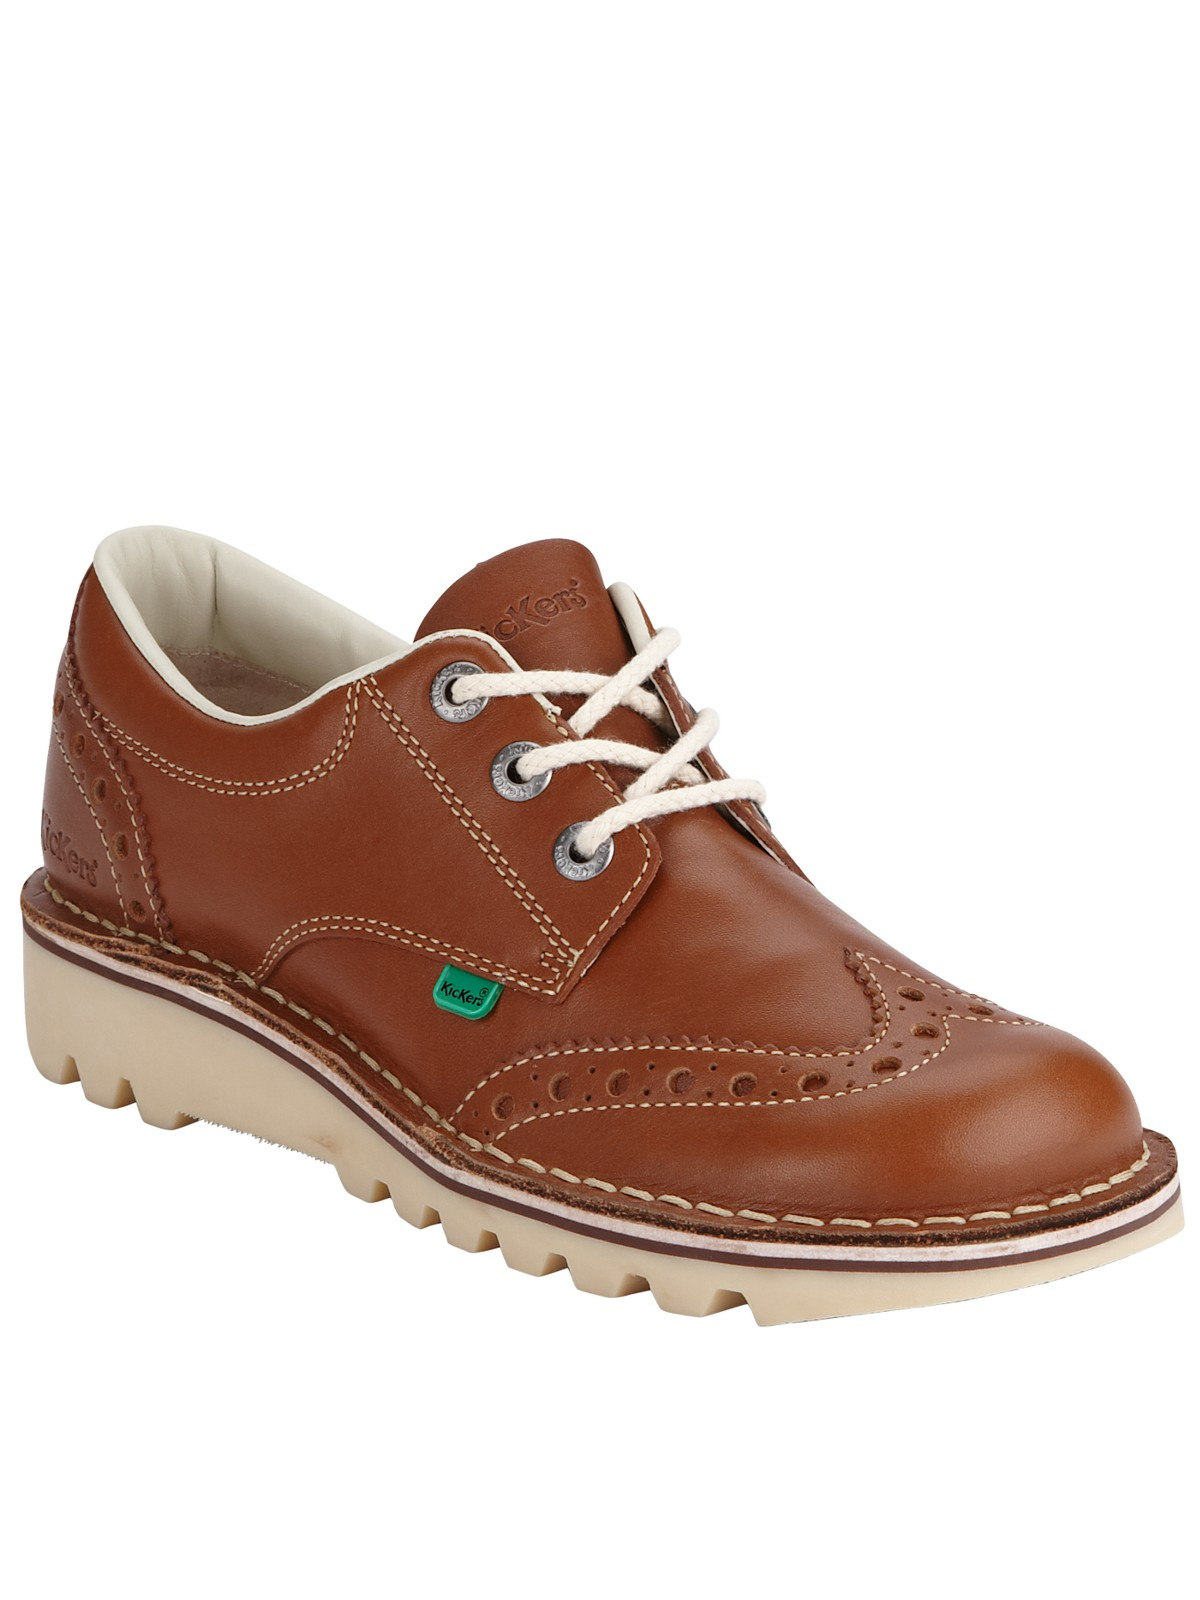 kickers kickers kick lo brogue shoe in brown for